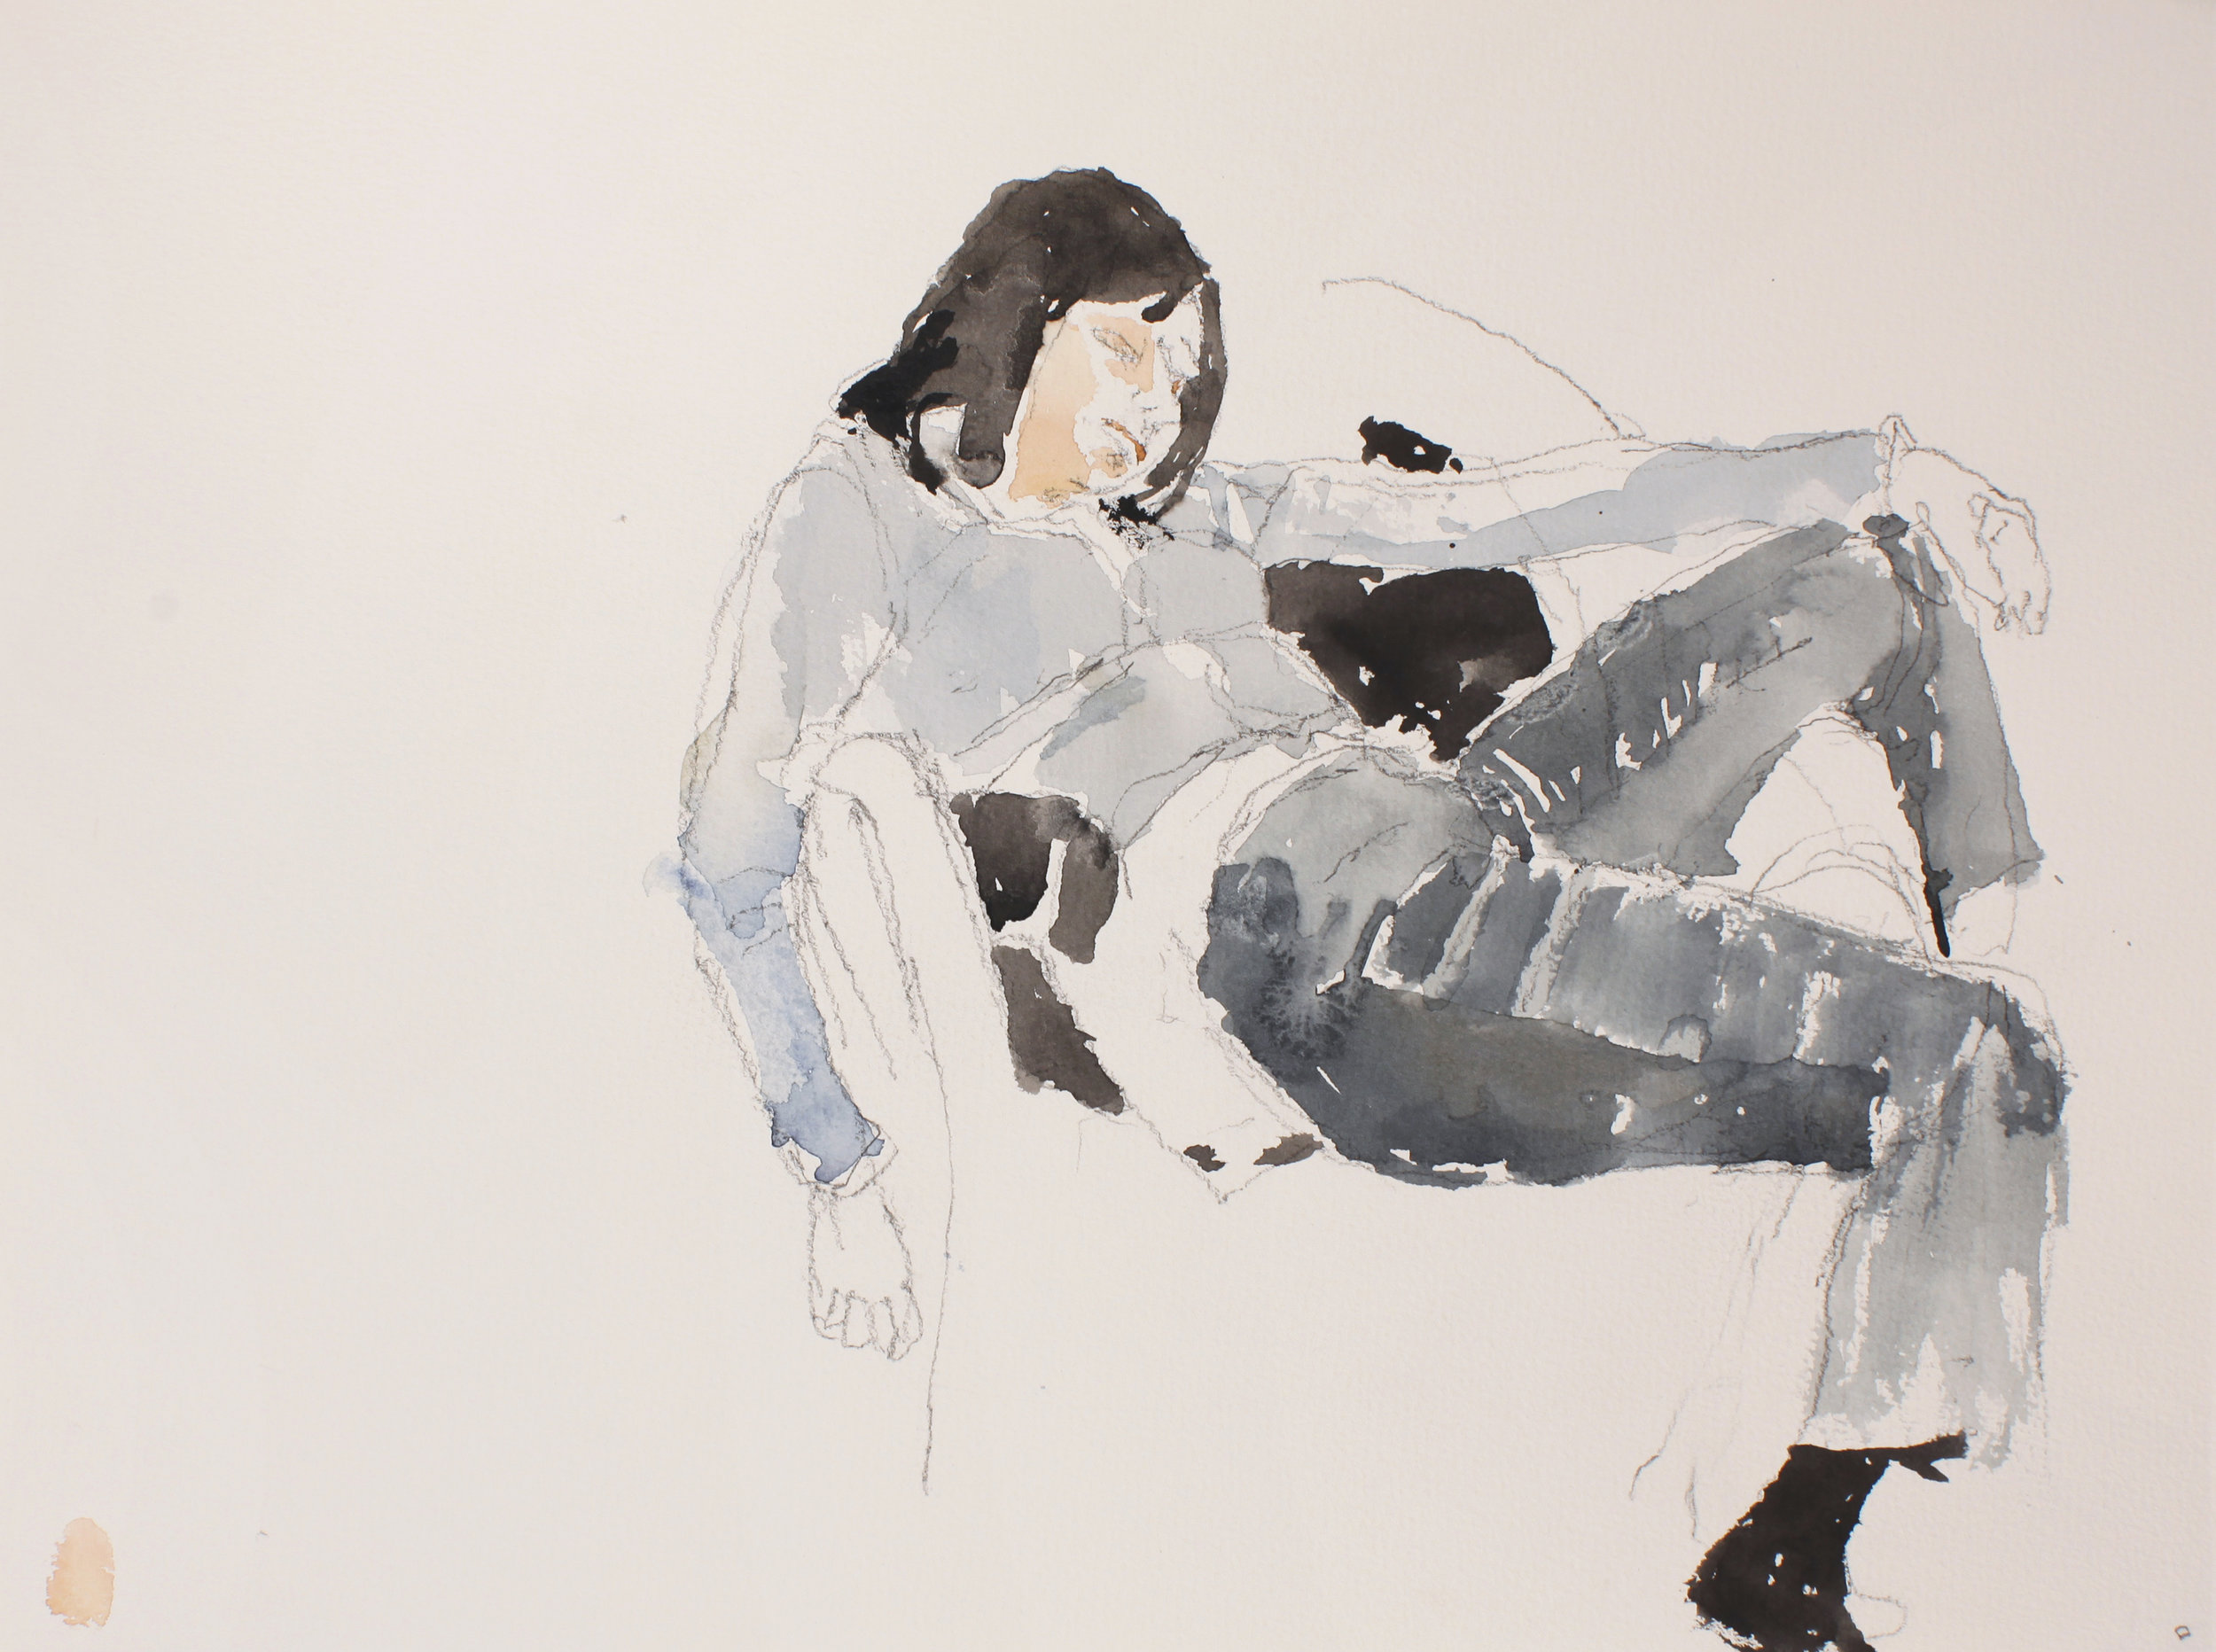 2007_Seated_Woman_in_Jeans_watercolour_and_pencil_on_paper_11x15in_28x38cm_WPF131.jpg